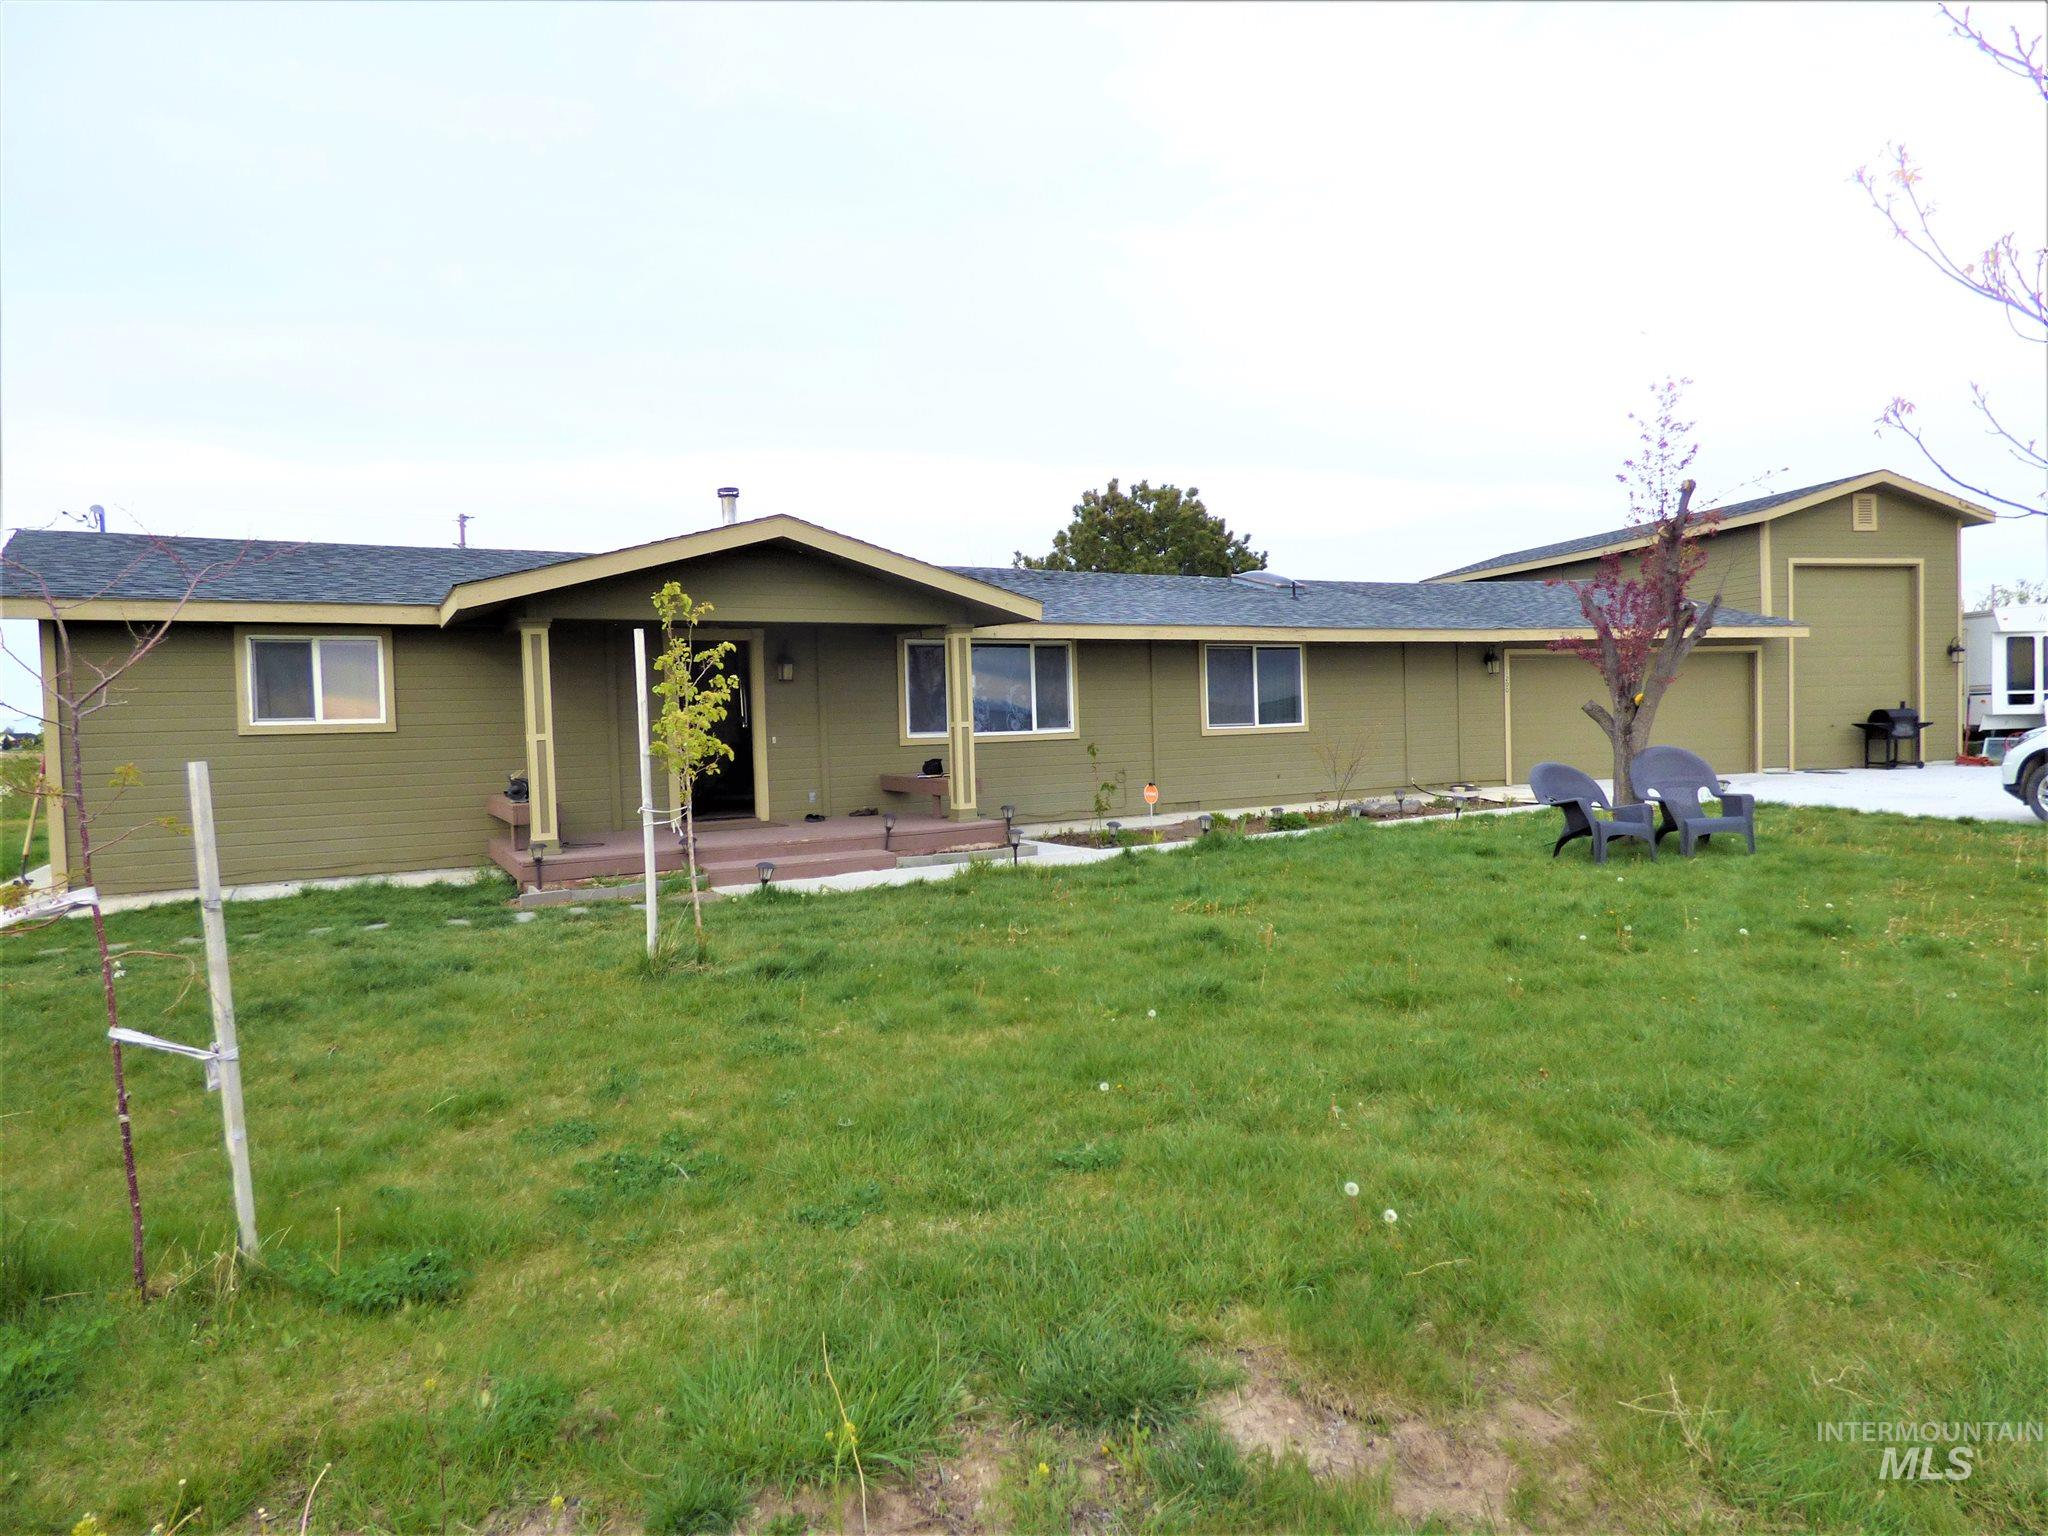 1200 N Black Cat Rd, Kuna, Idaho 83634-1107, Land For Sale, Price $975,000, 98791672